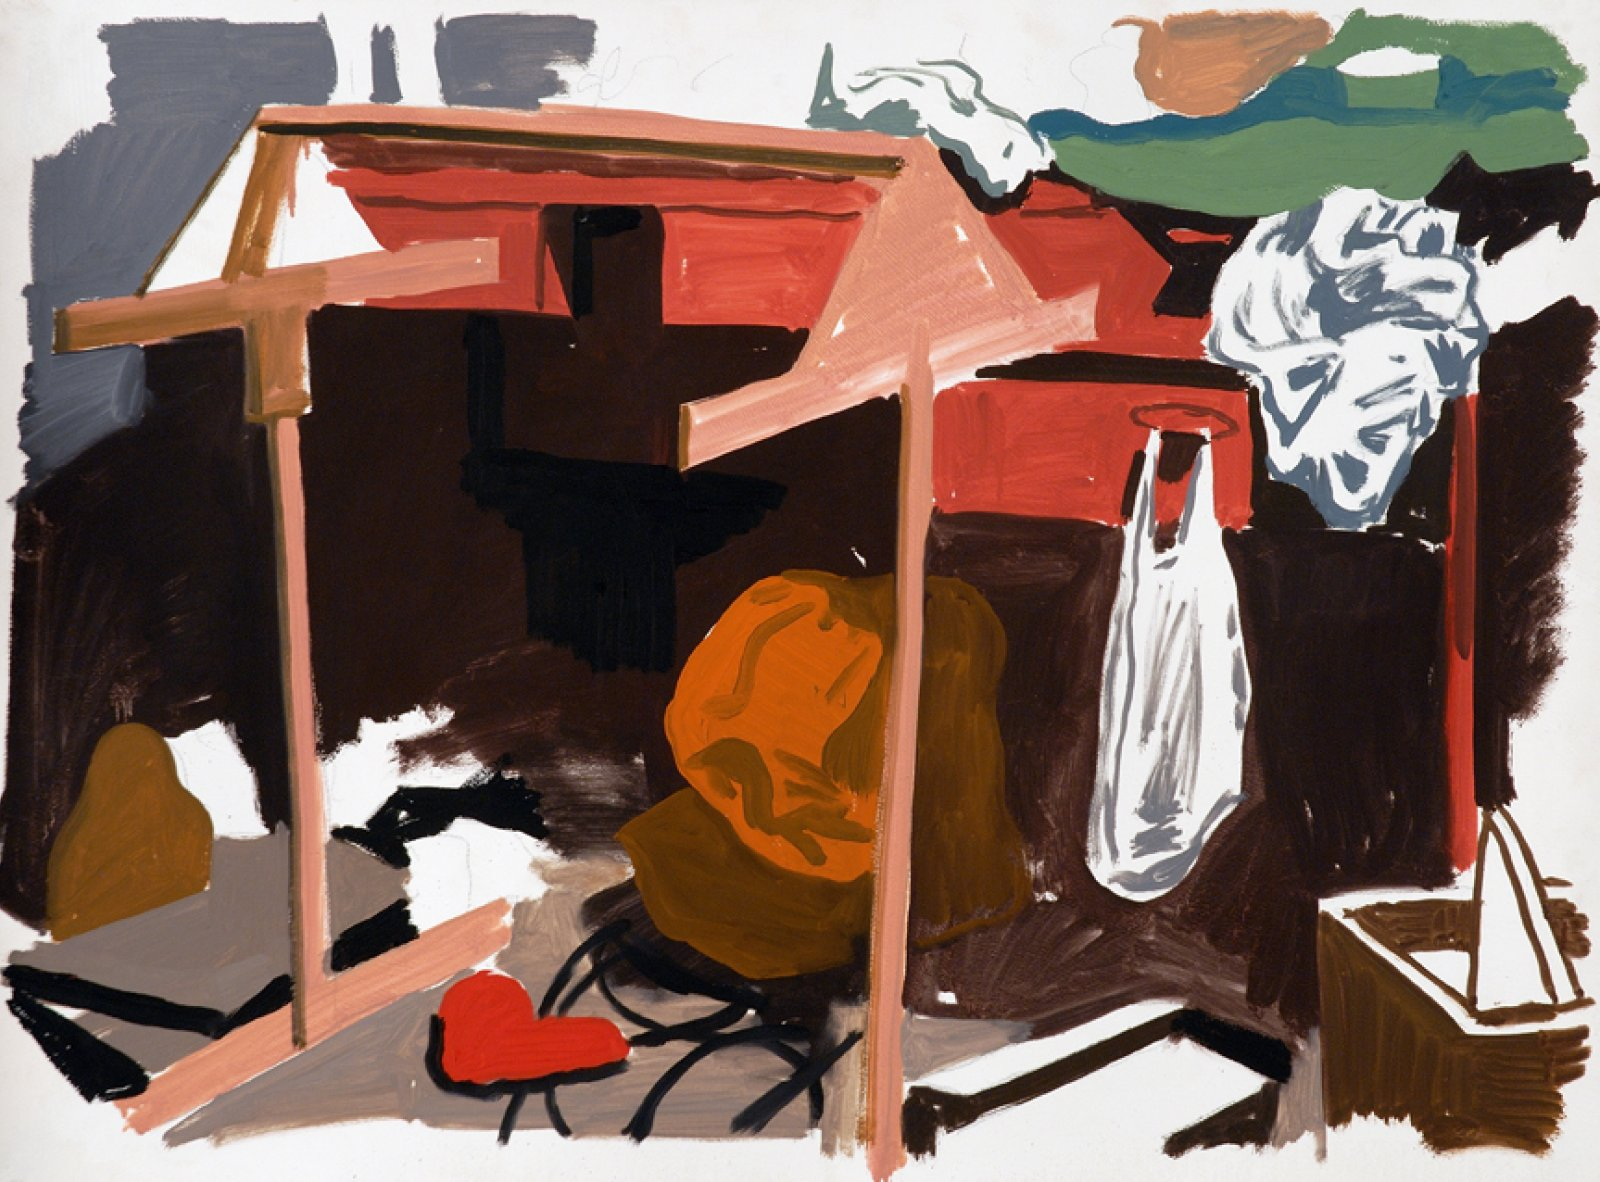 Damian Moppett, Studio, 2006, oil on paper, 29 x 37 in. (73 x 94 cm) by Damian Moppett